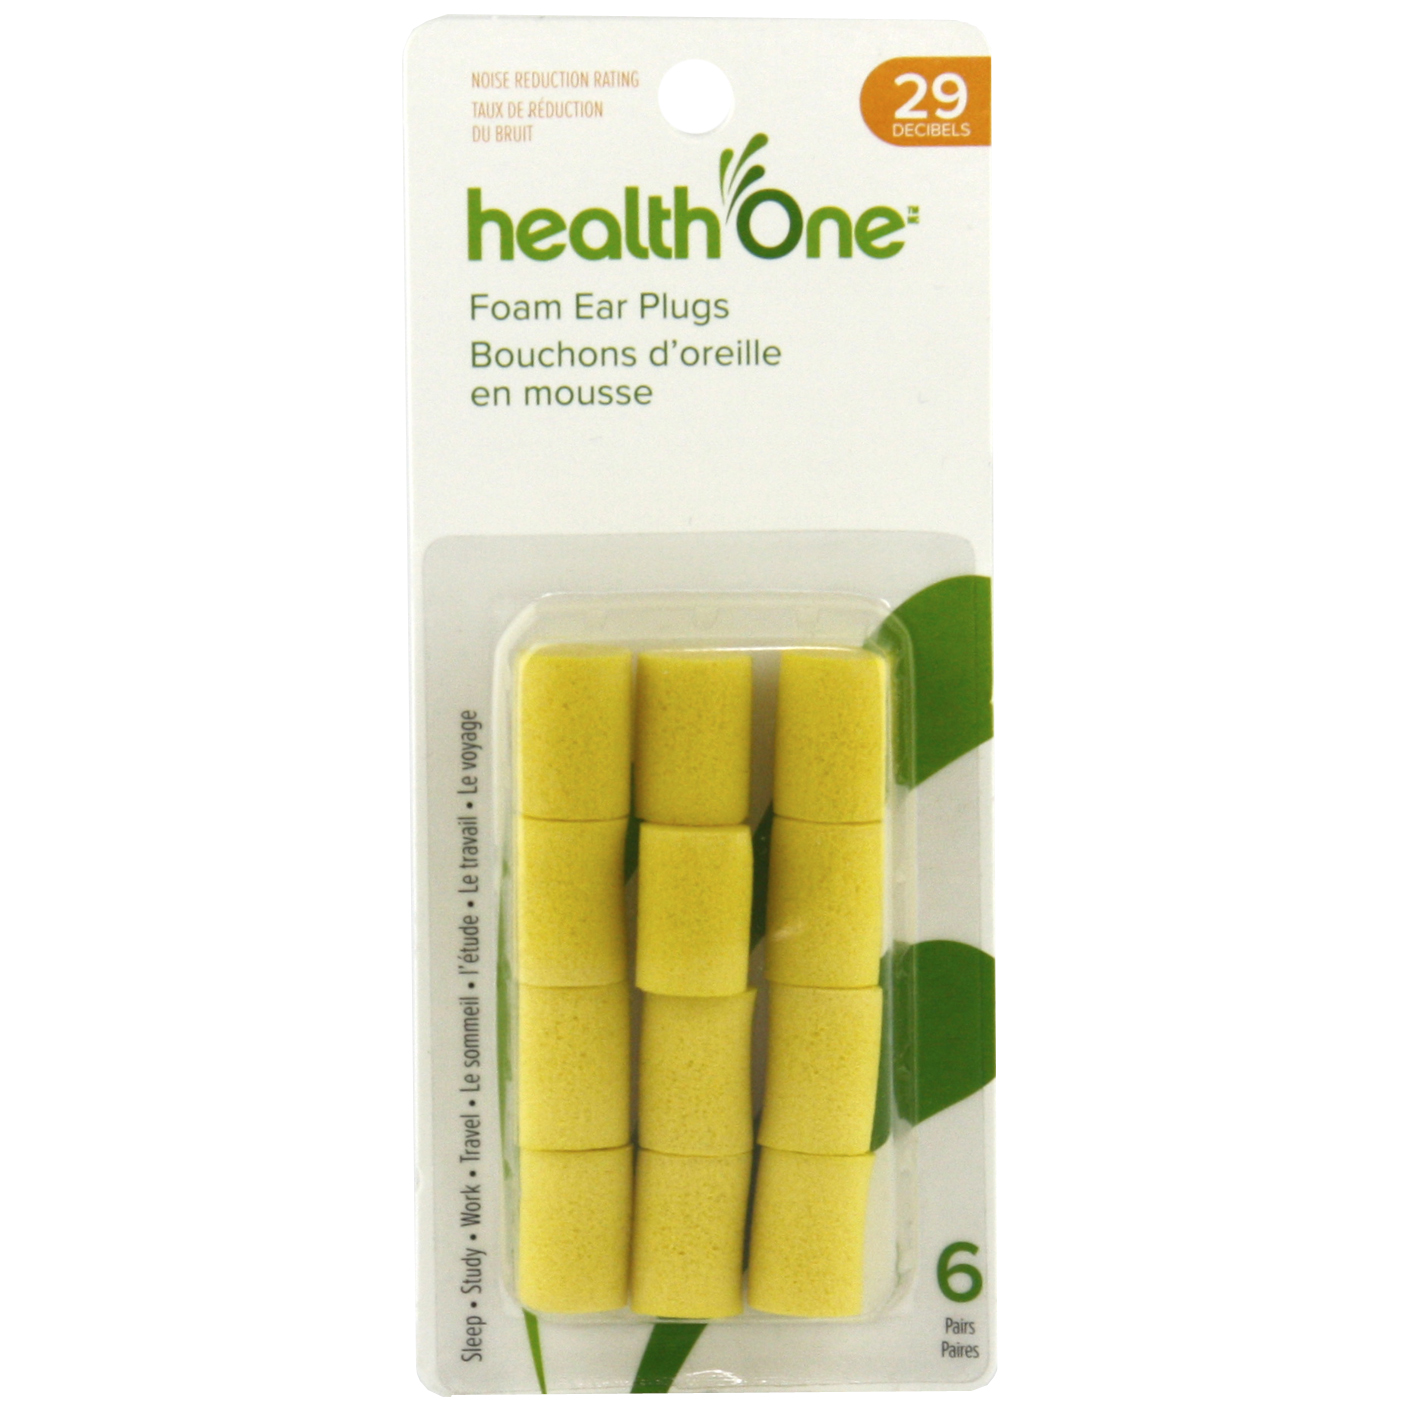 health One Foam Ear Plugs, NRR 29, With Case, 1 Pair